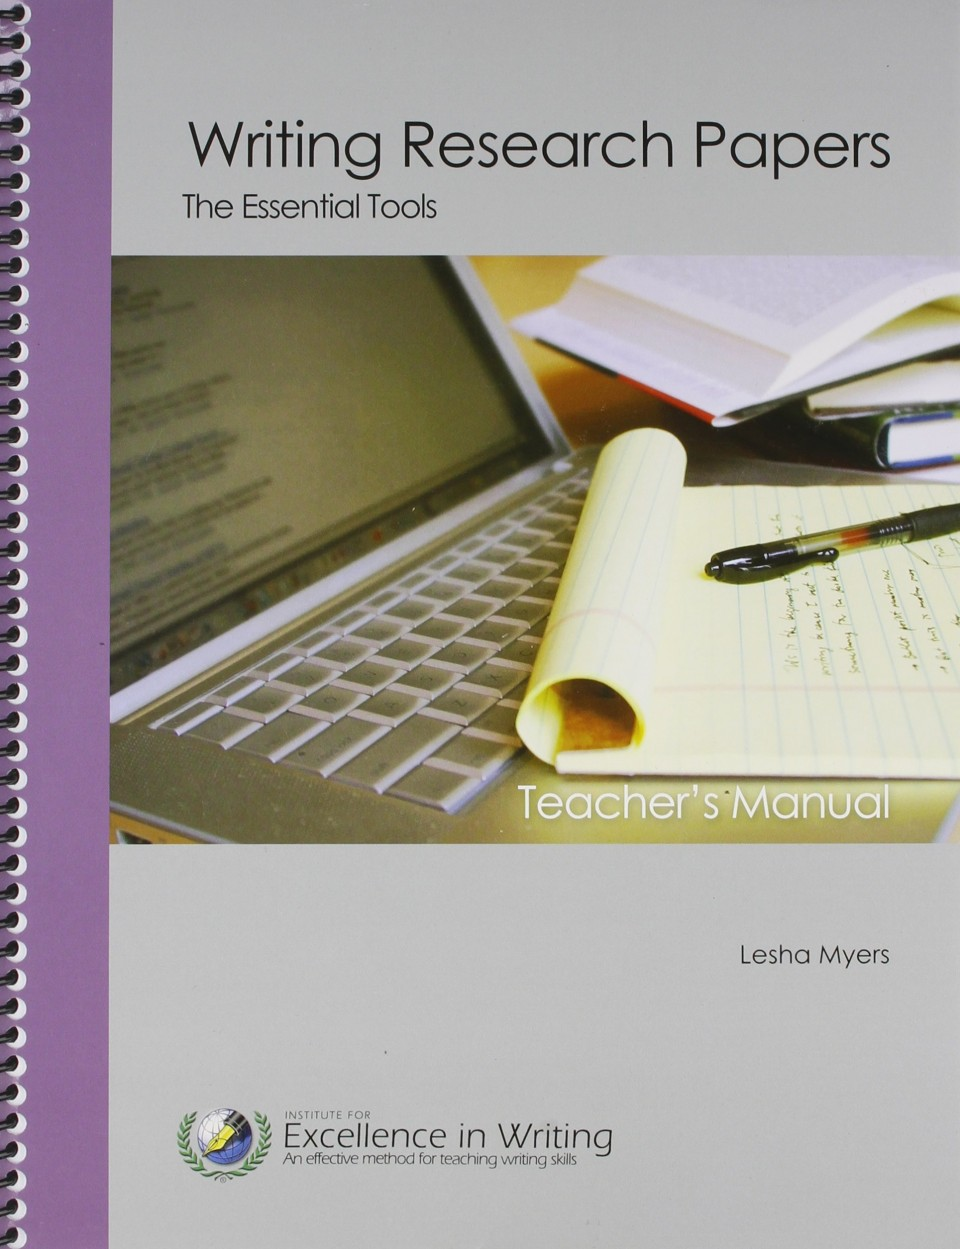 021 91ax63bn6xl Writing Research Striking Paper Papers Lester 16th Edition A Complete Guide James D. 960